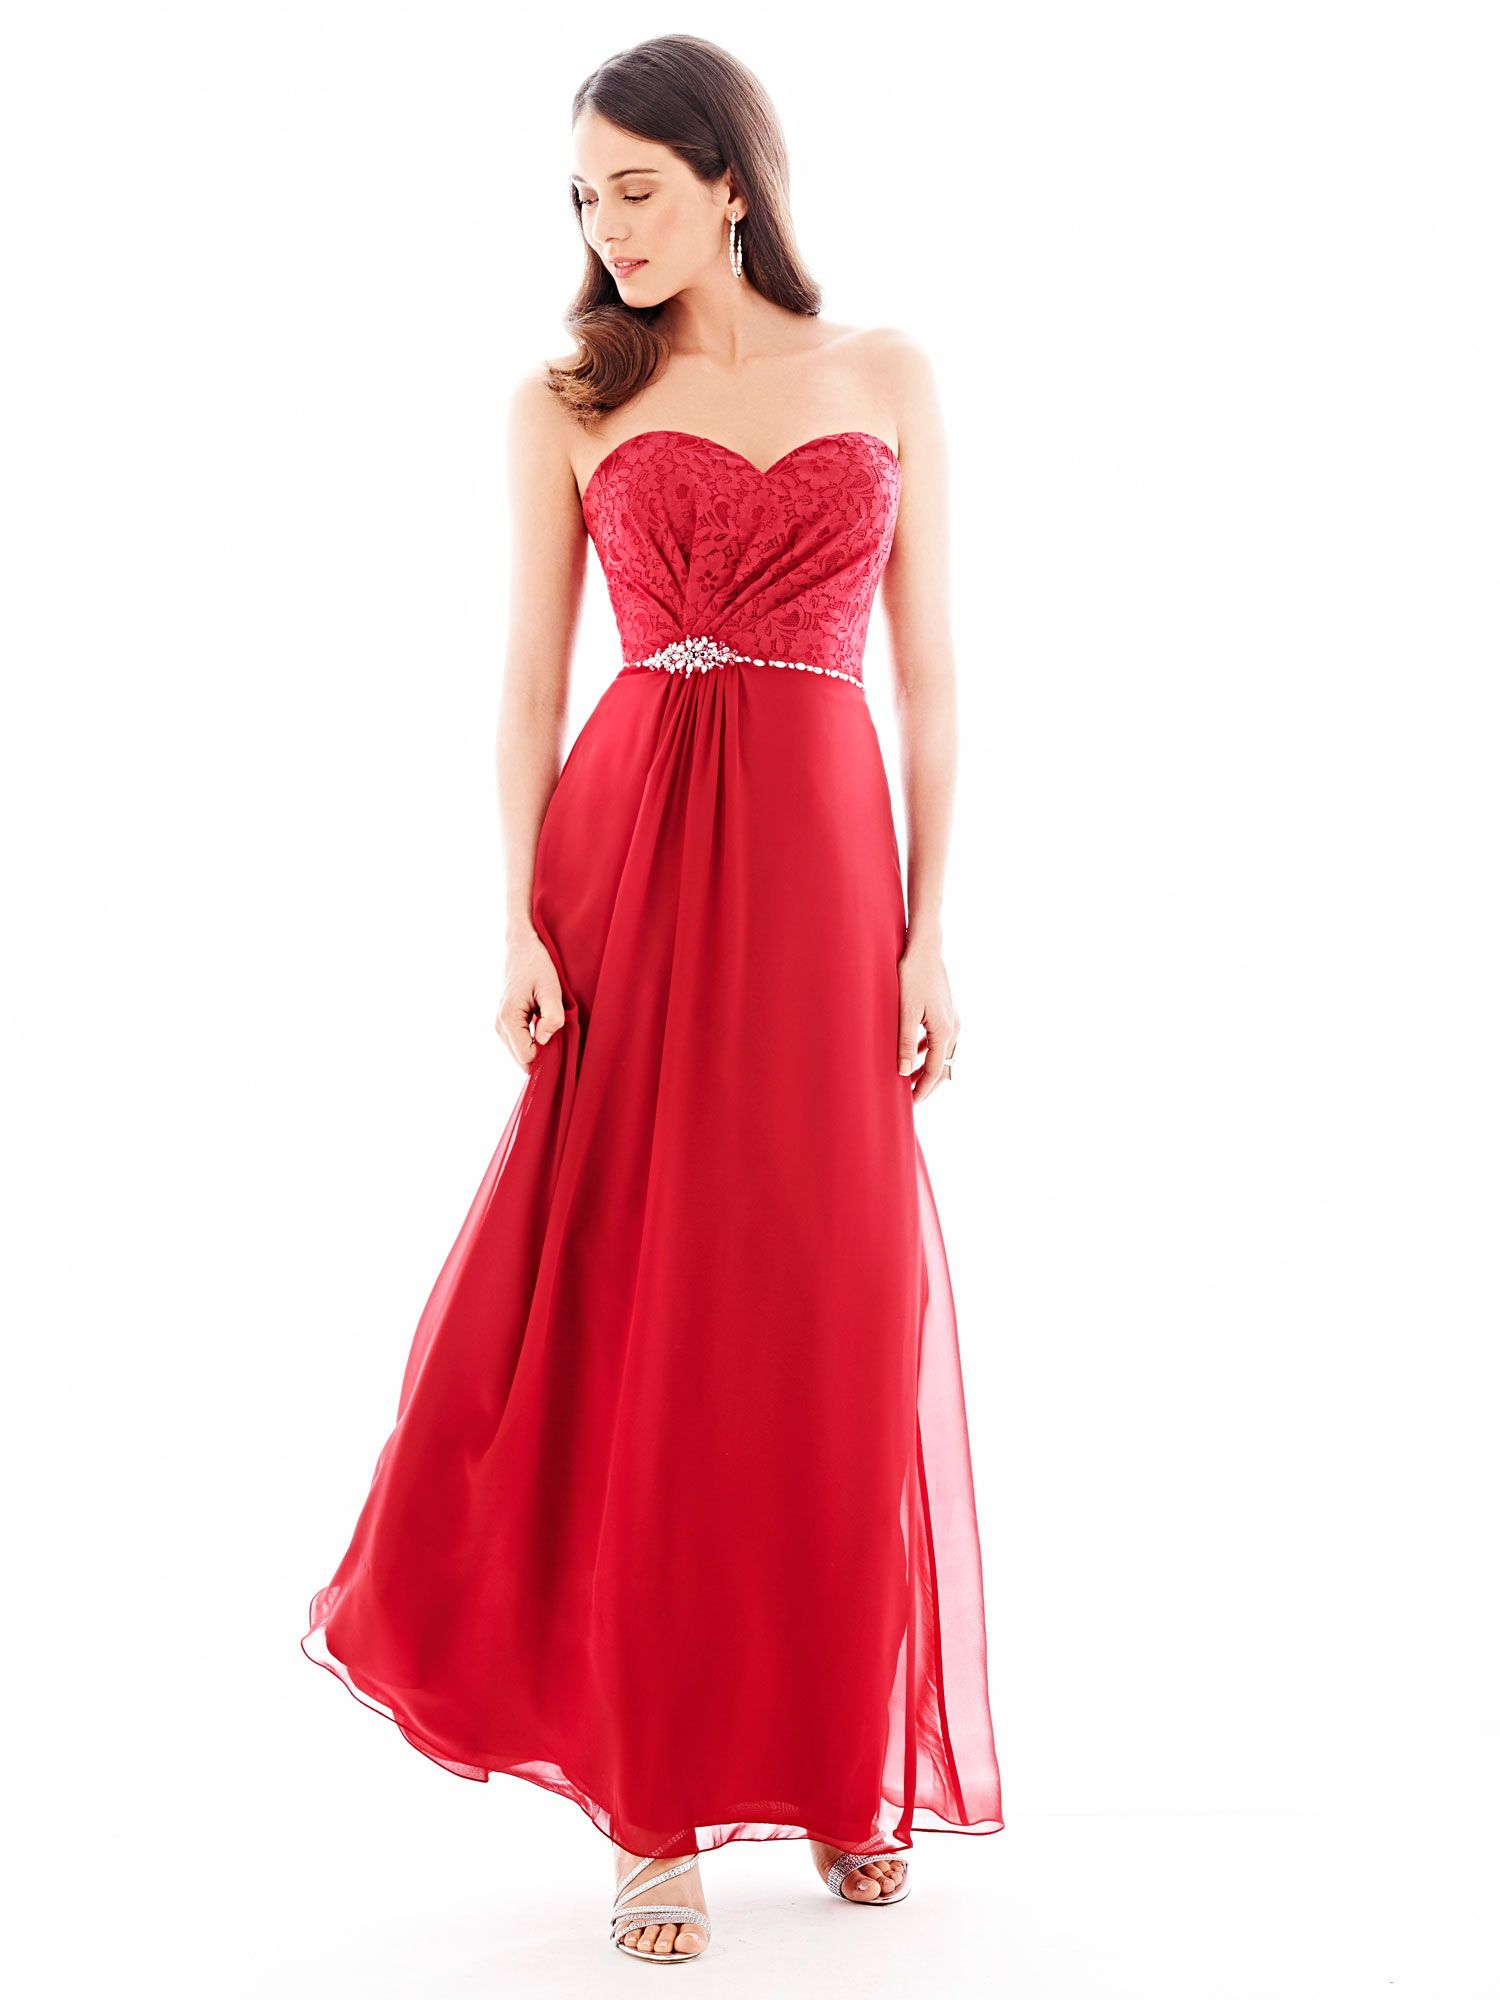 Colour by winston style 5200 dresses can be